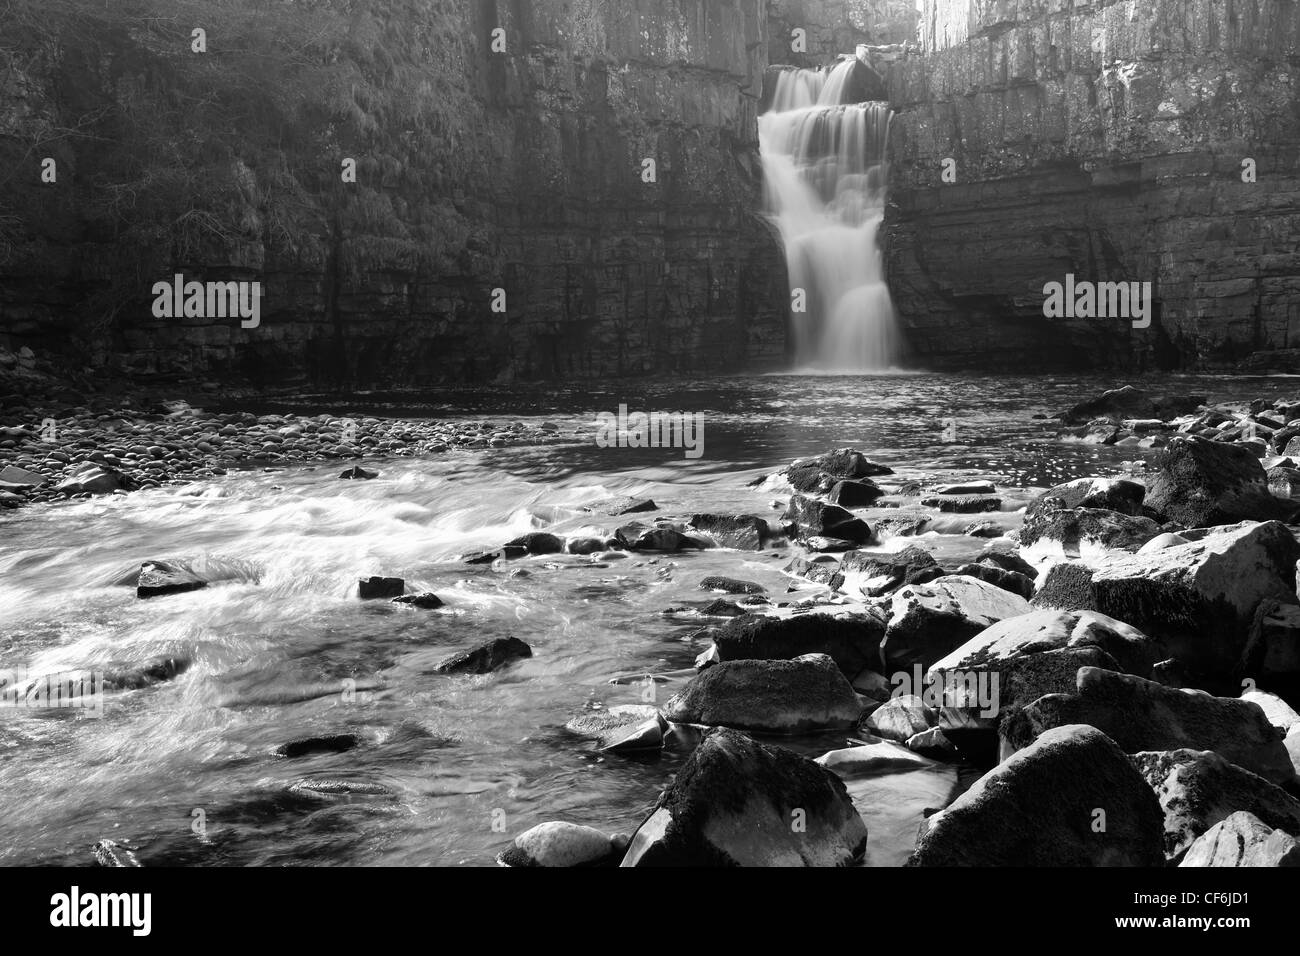 Middleton-in-Teesdale, County Durham, England. High Force, England's biggest waterfall, on the River Tees. - Stock Image